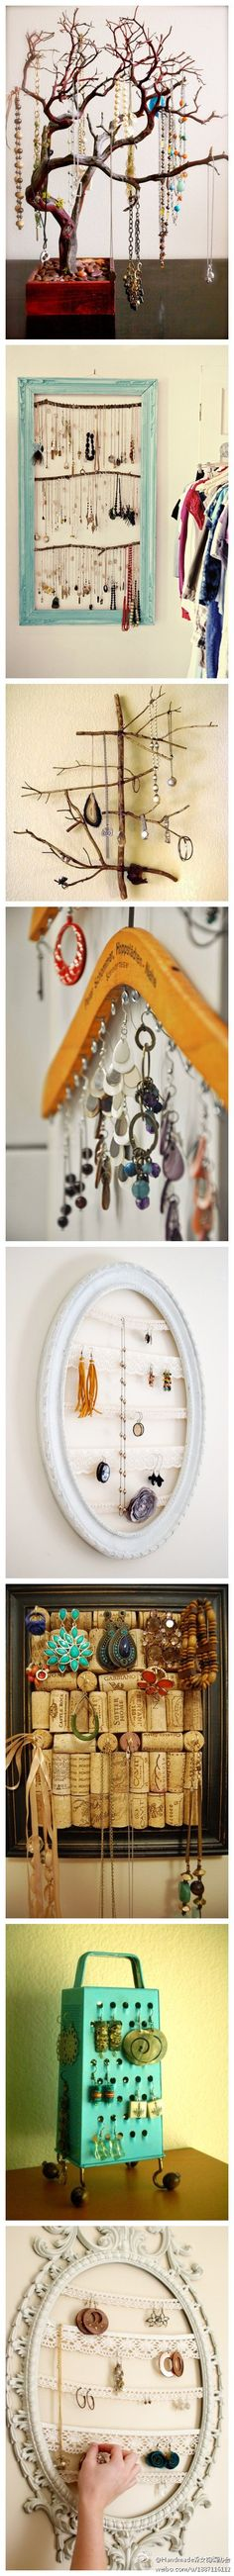 jewelry ideas - out of all of these I like the wine corks. Most cork boards do not have the jewelry accent/idea!